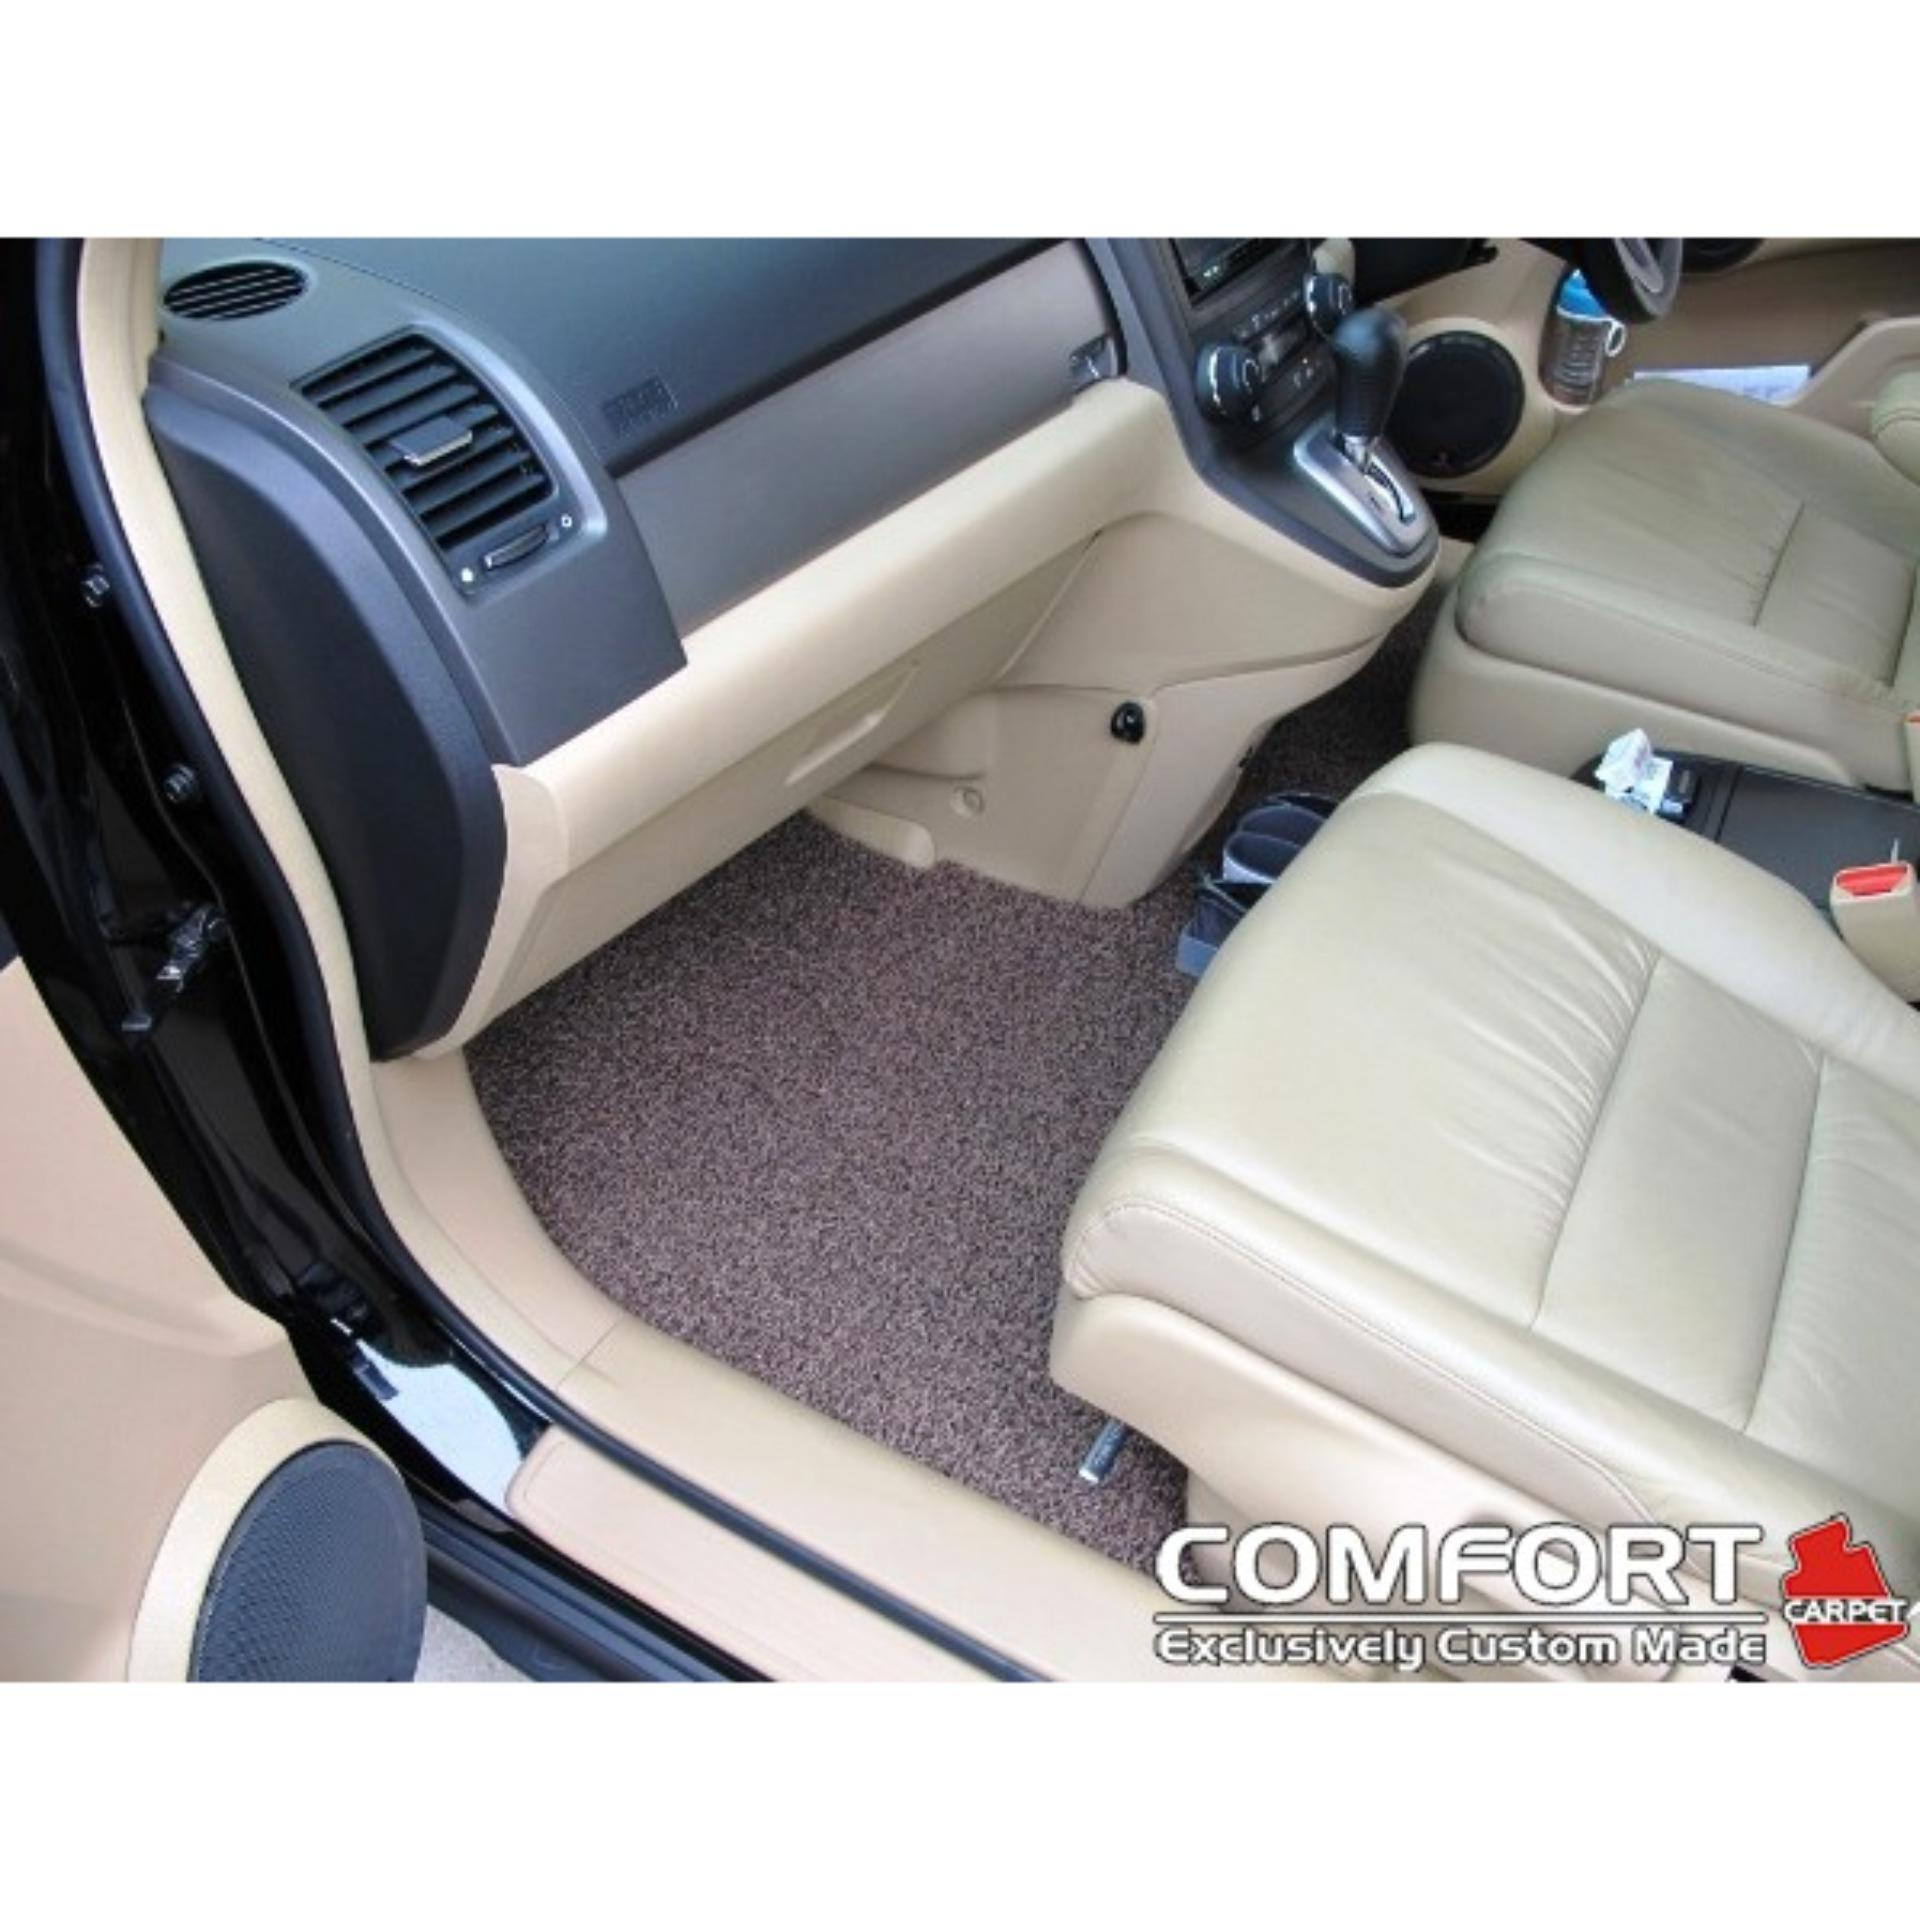 Daihatsu Sirion Karpet Mobil Comfort Deluxe 12mm Car Mat Full Set Toyota Camry Bagasi Mazda 2 All New Hatchback Premium Originalcomfort